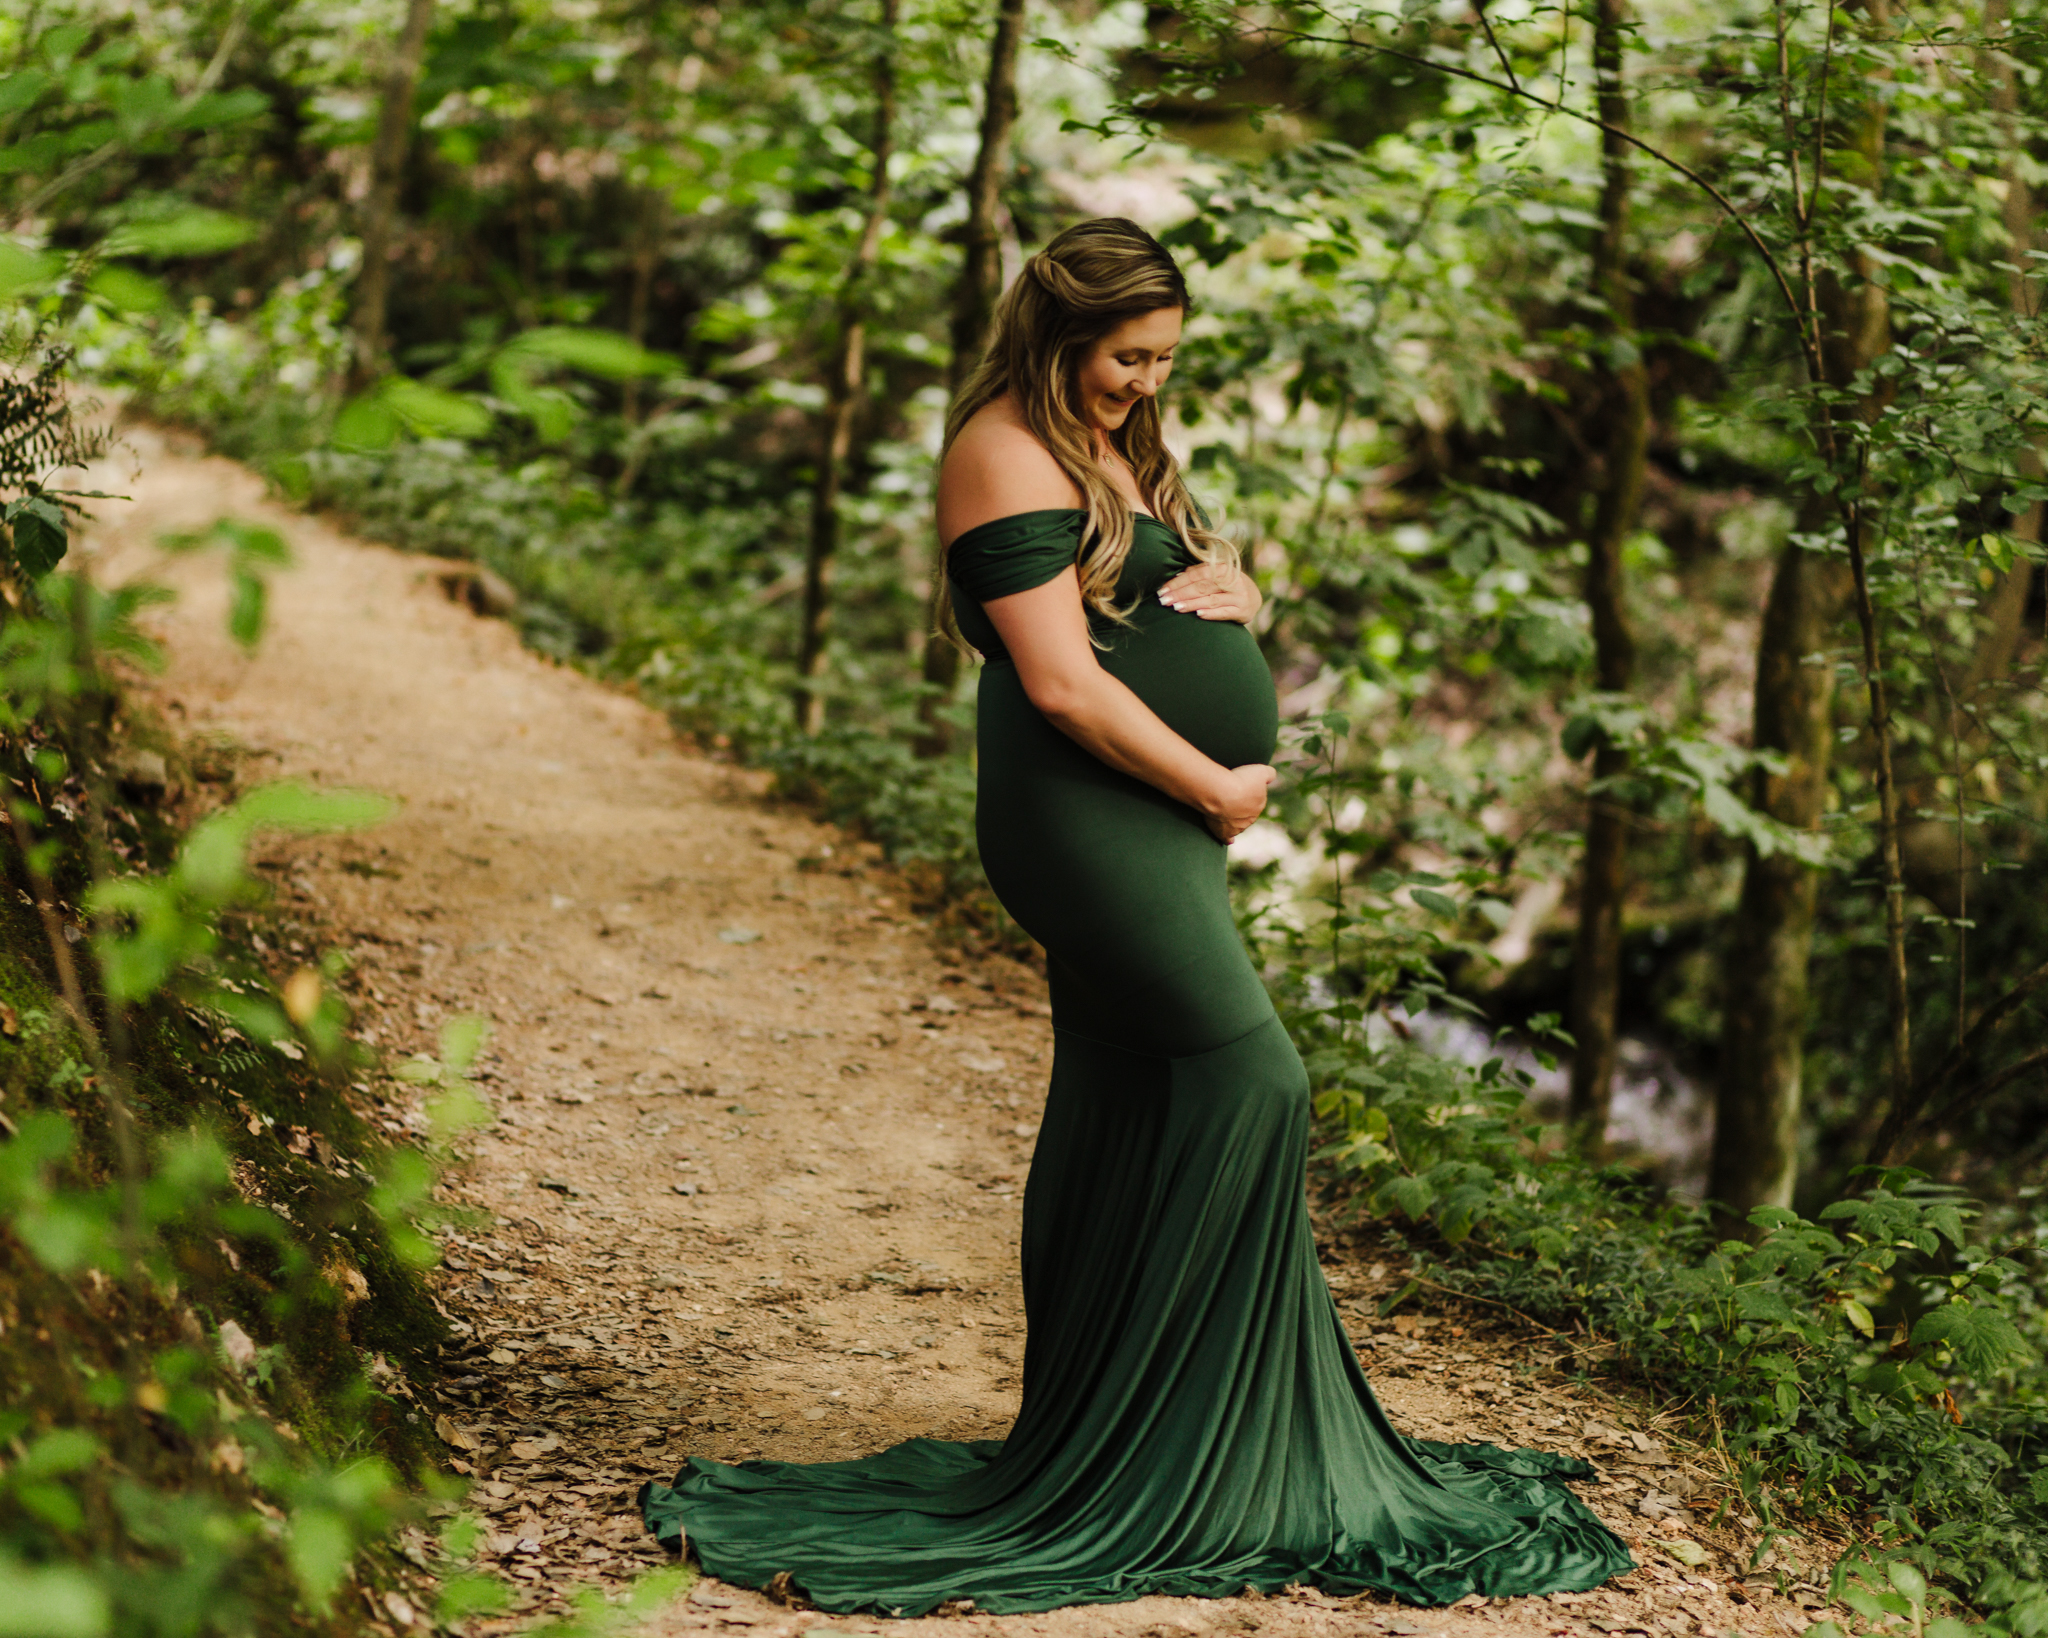 pregnant mom standing on trail surrounded by foliage while looking down and cradling her baby belly.